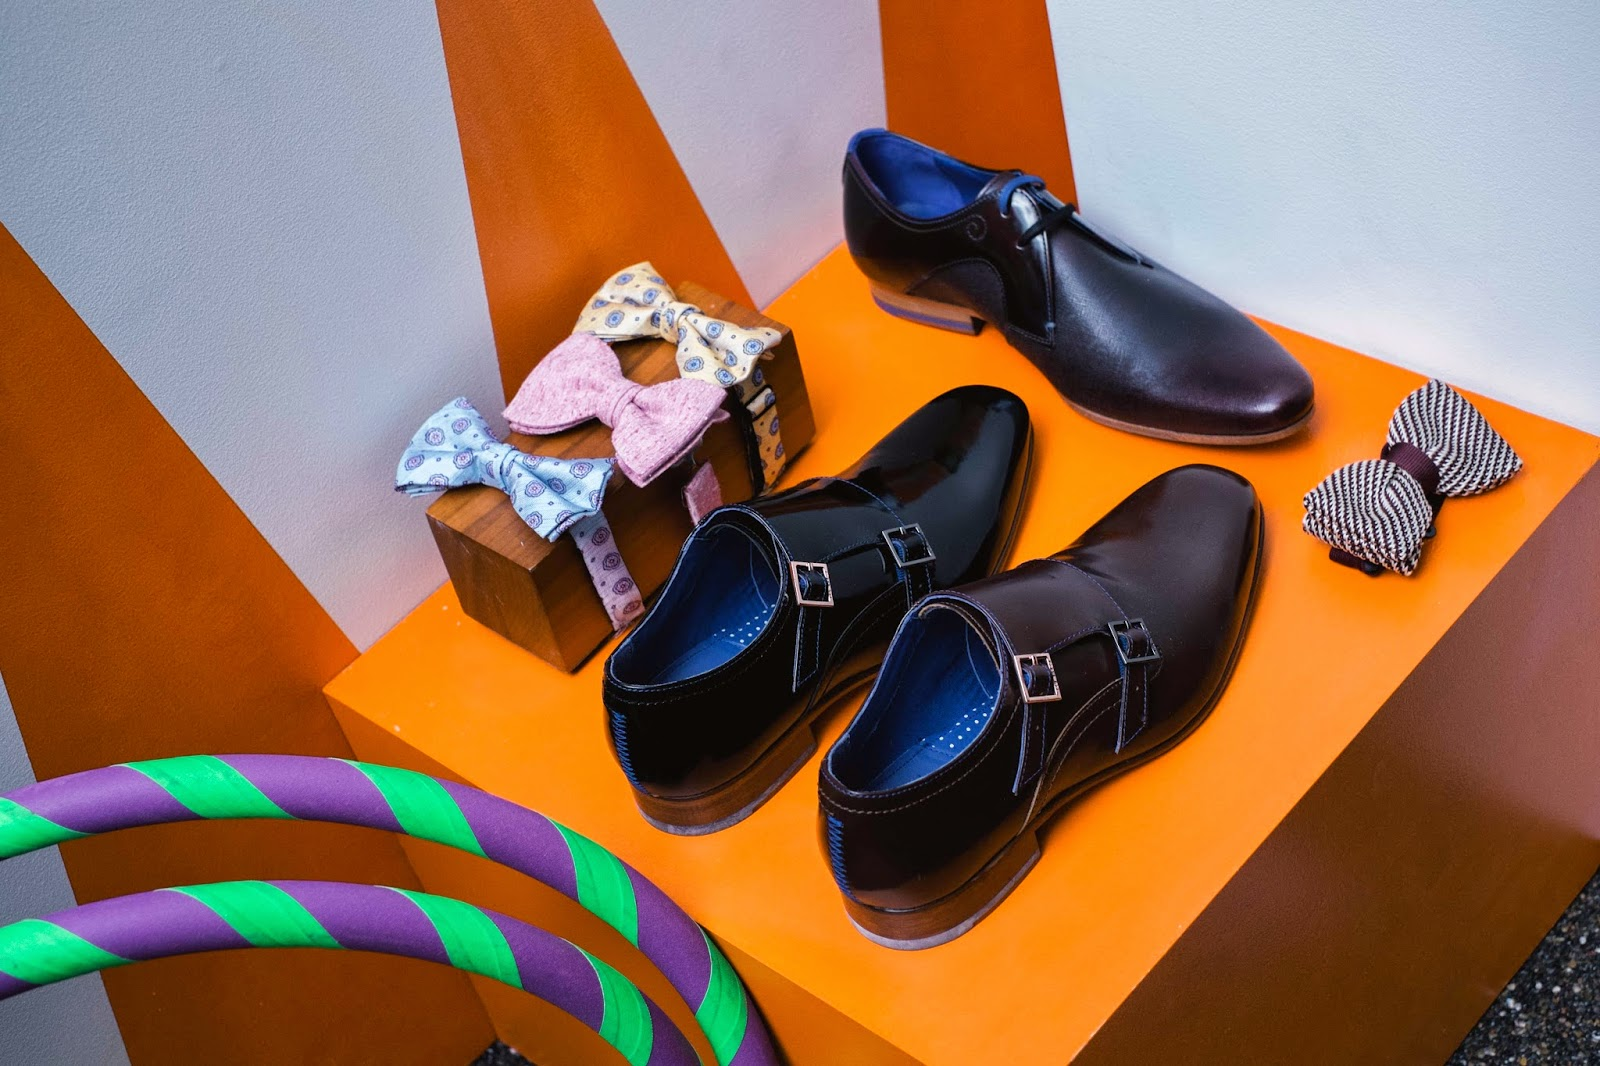 mybelonging-ted-baker-ss14-collection-preview-6.jpg